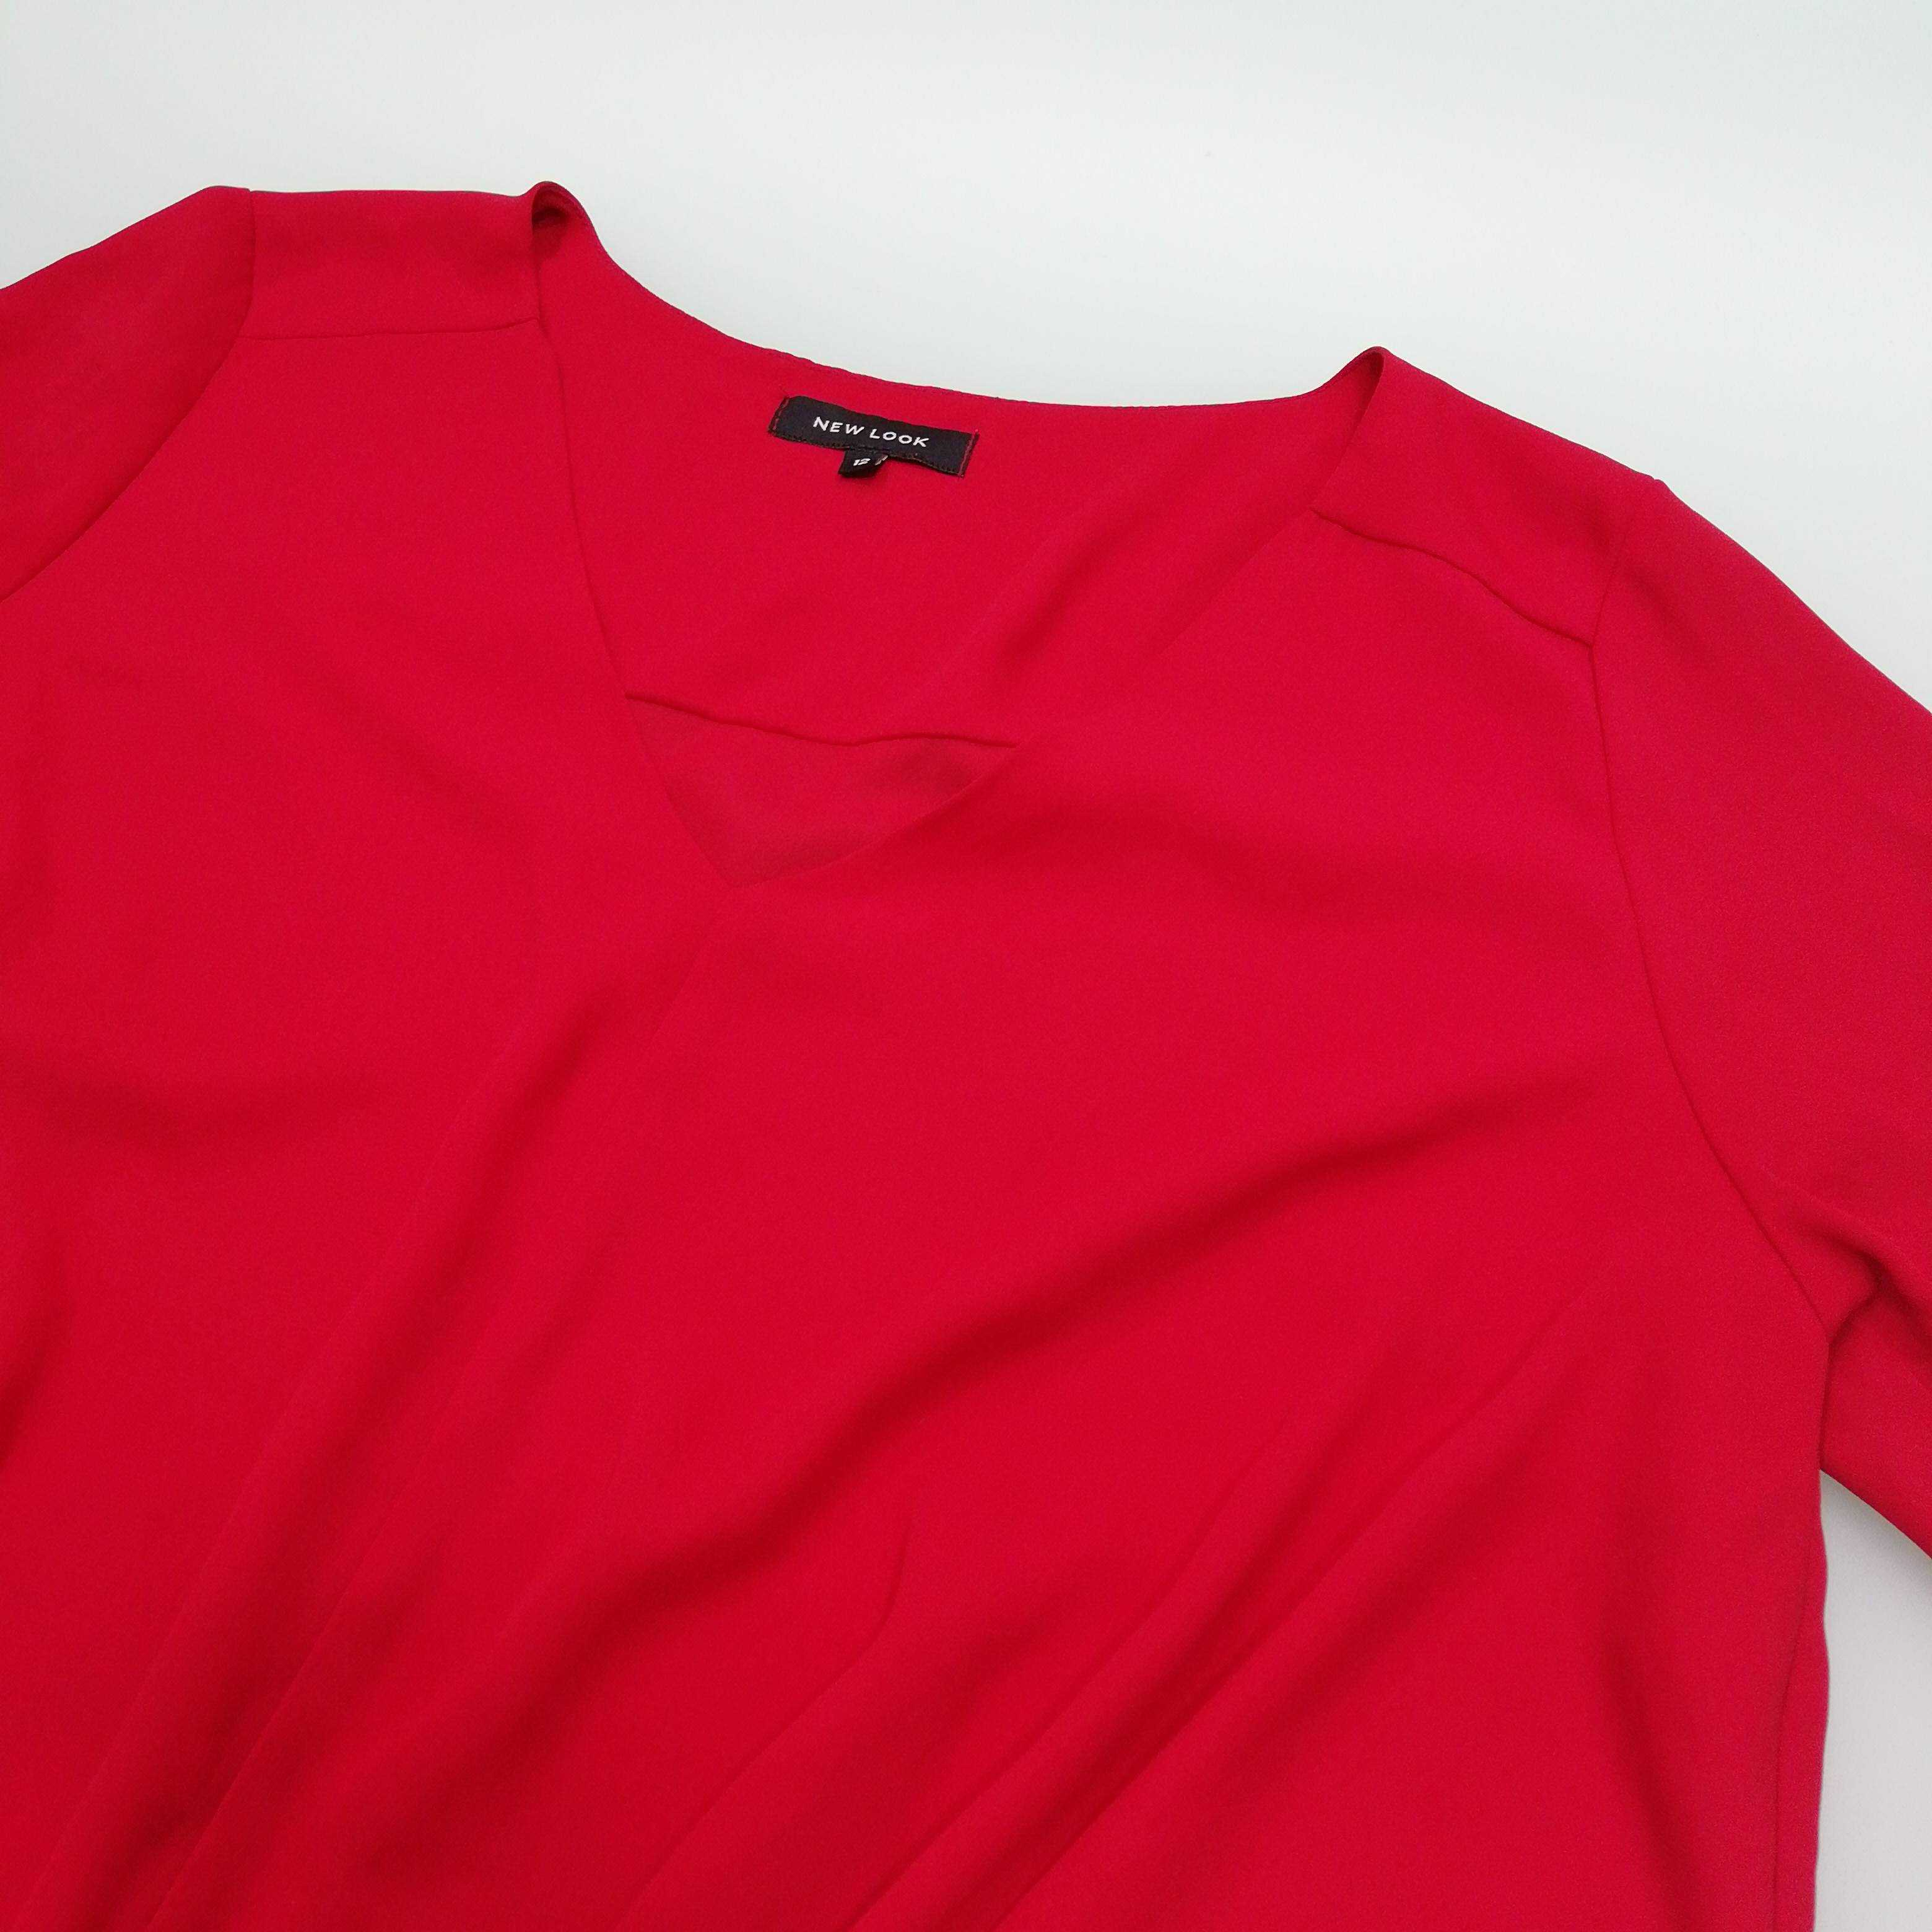 New Look Women's Long Sleeve Shirt Size UK 12